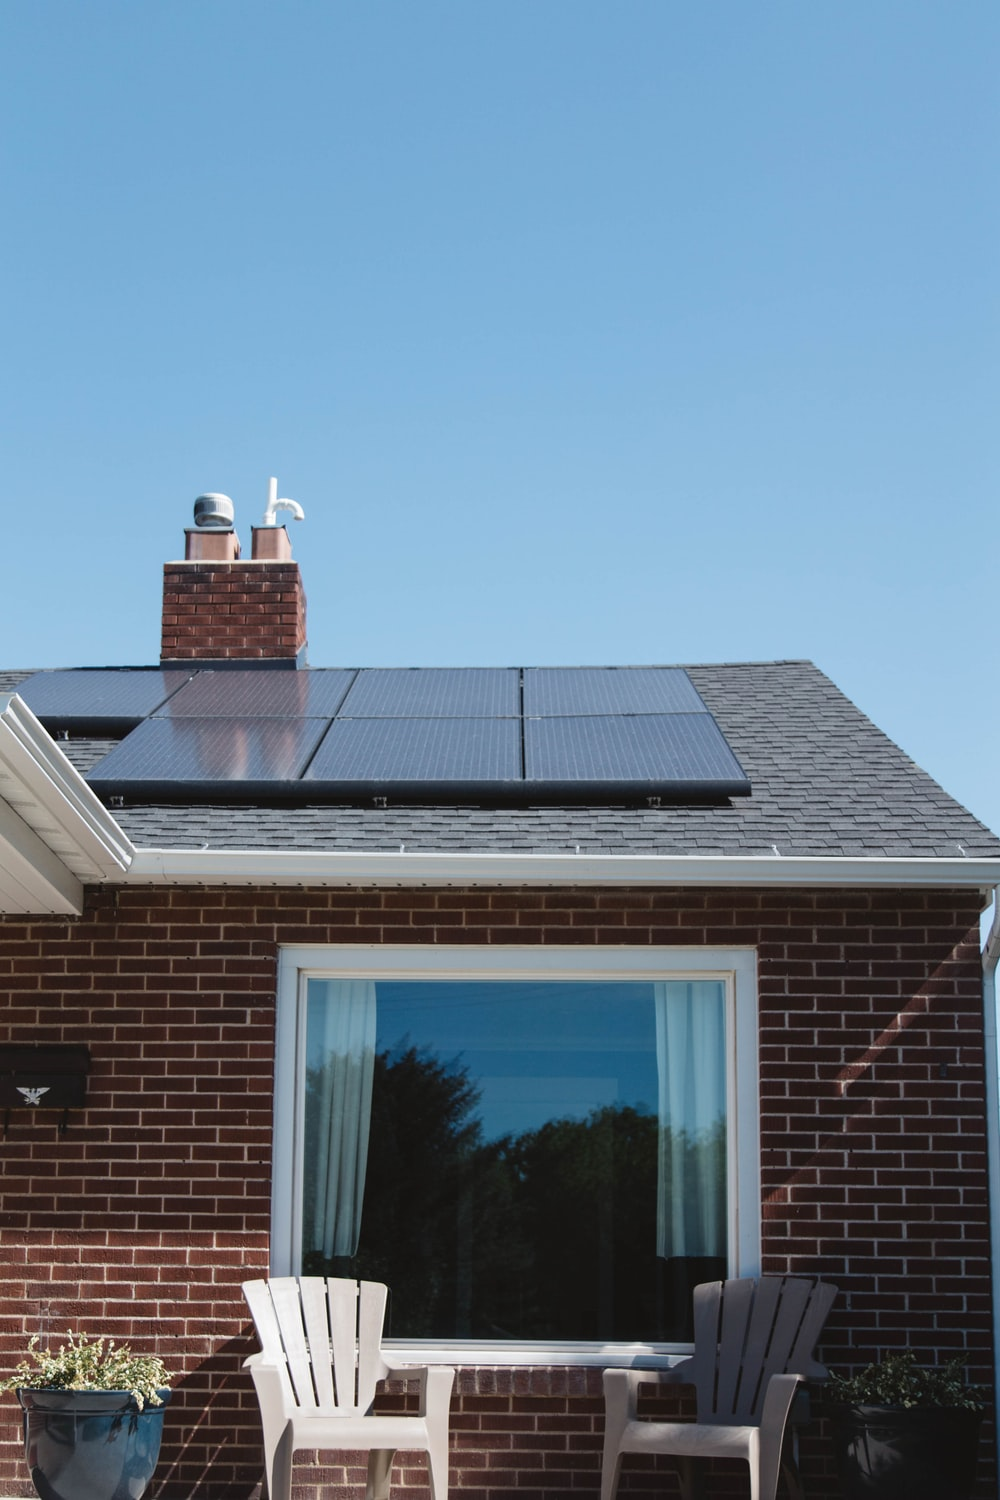 brown brick house with solar panels on roof